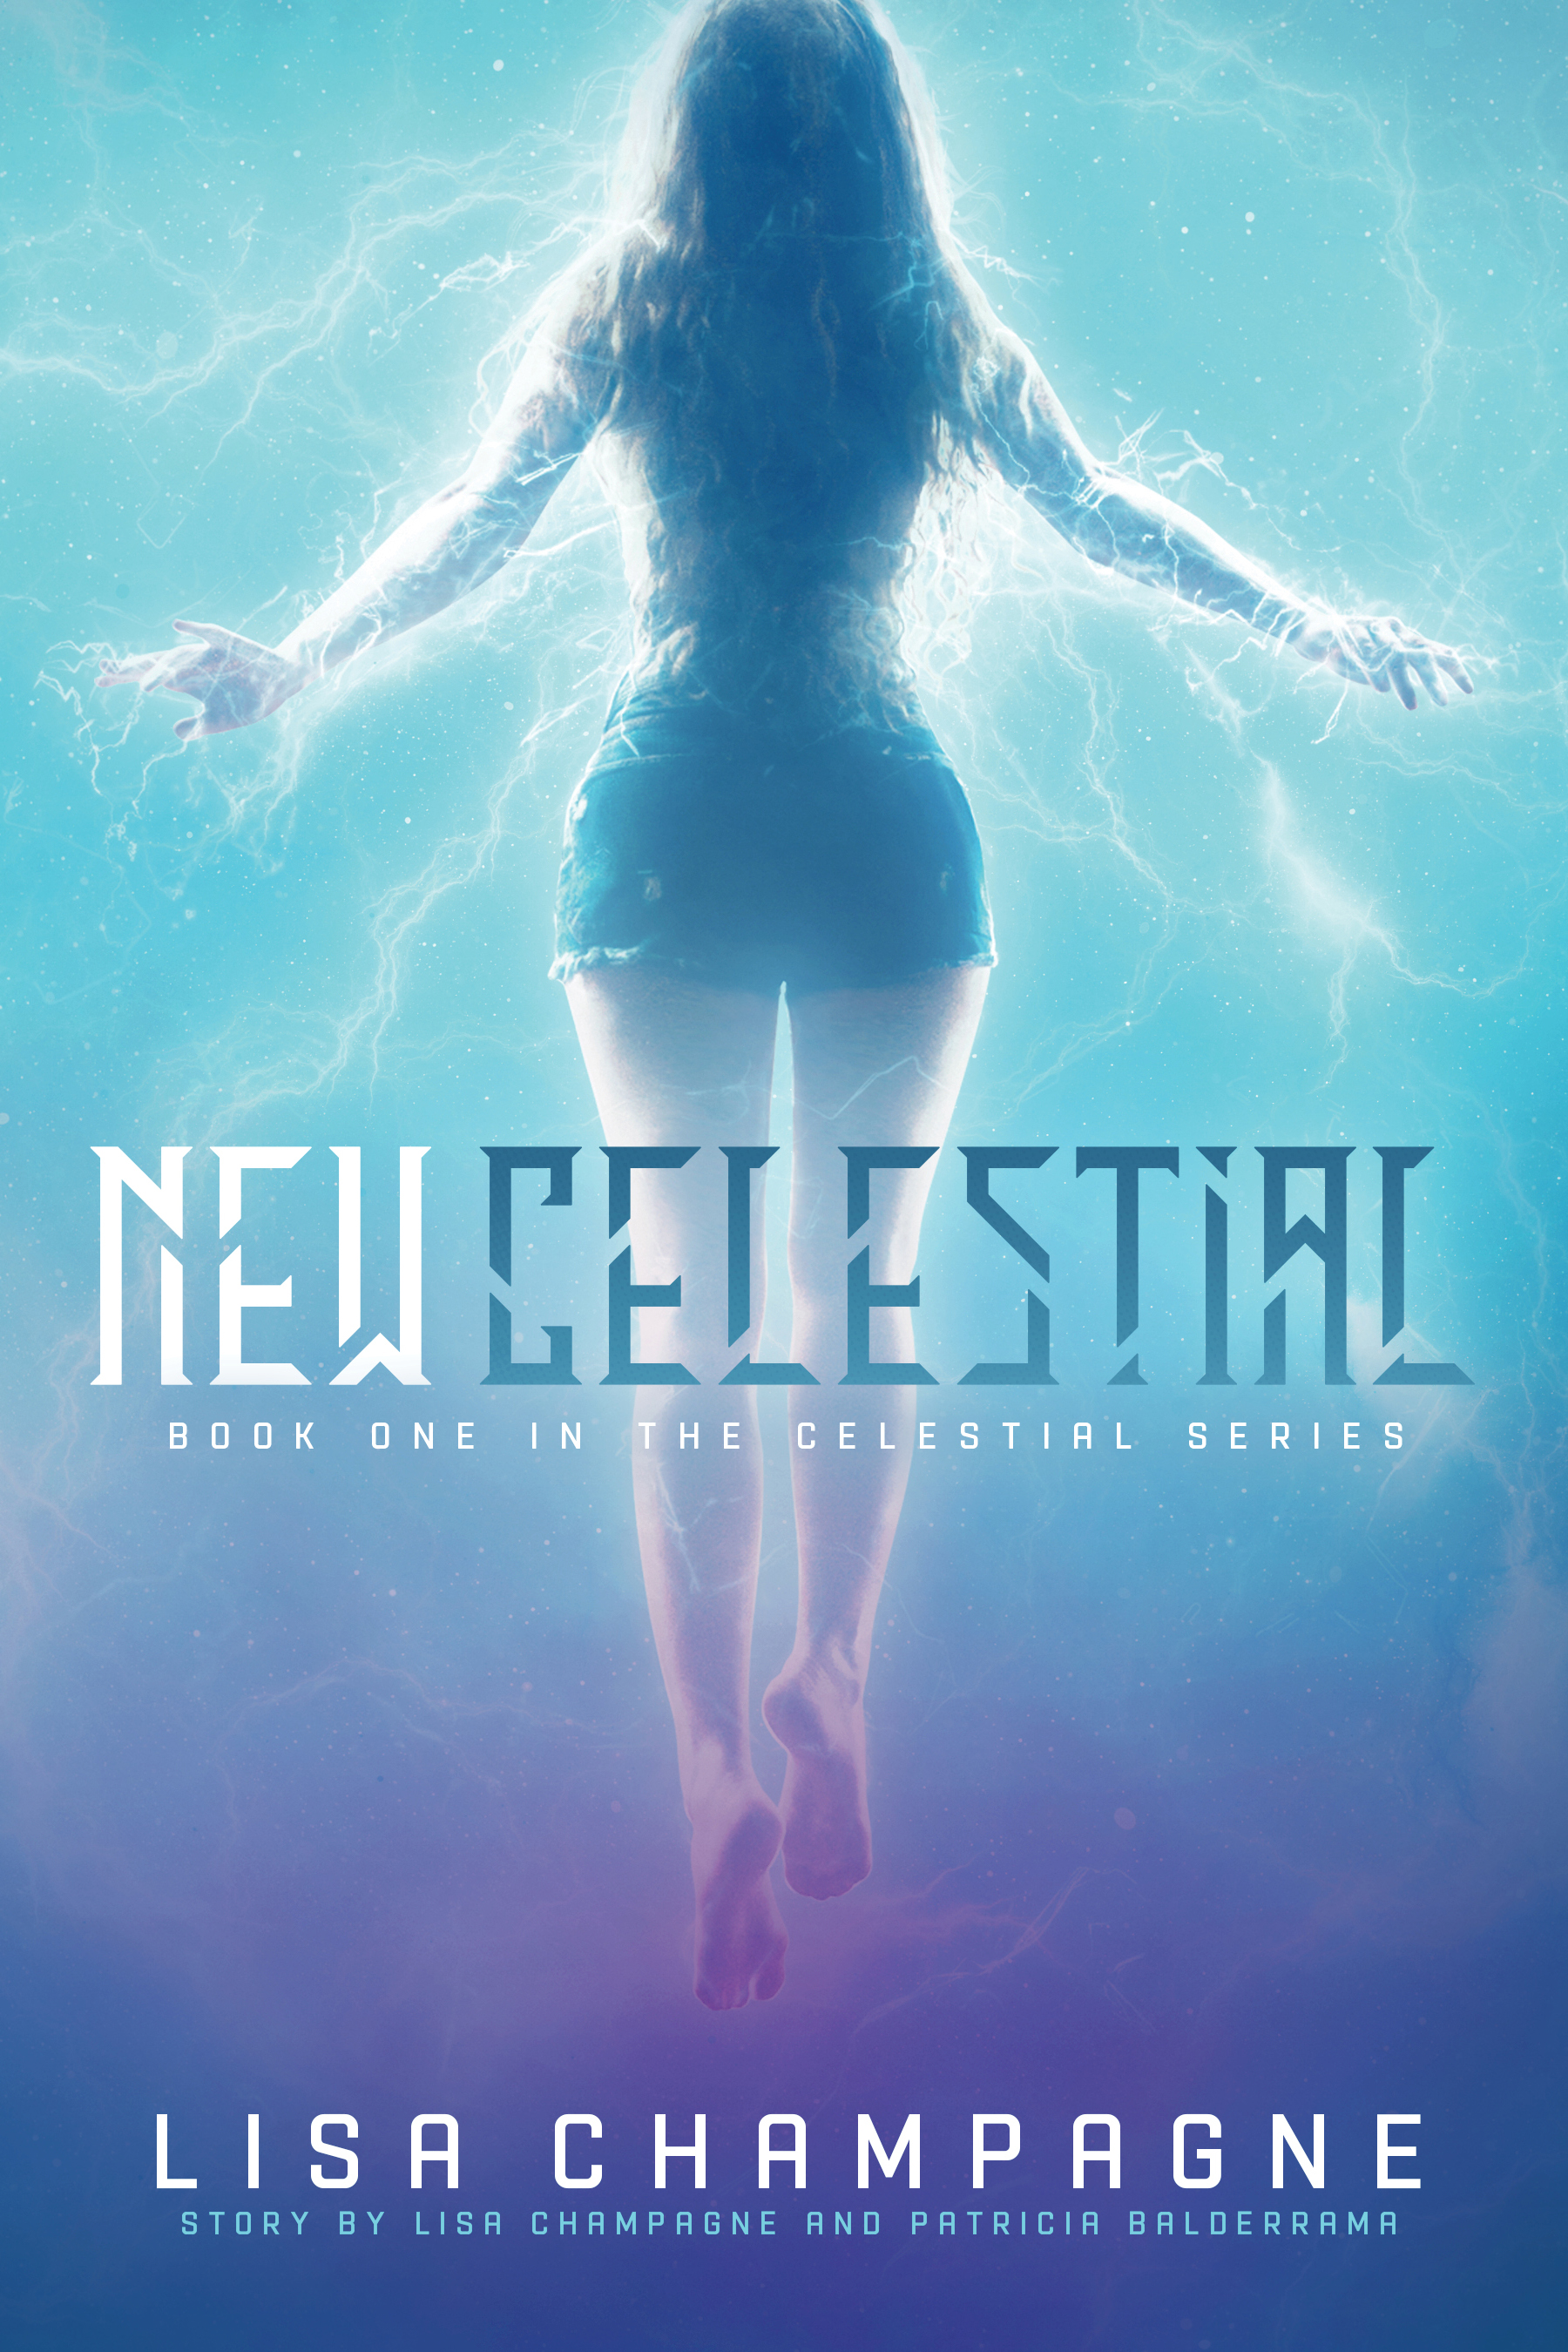 New Celestial: Lisa Champagne's Thrilling New Book